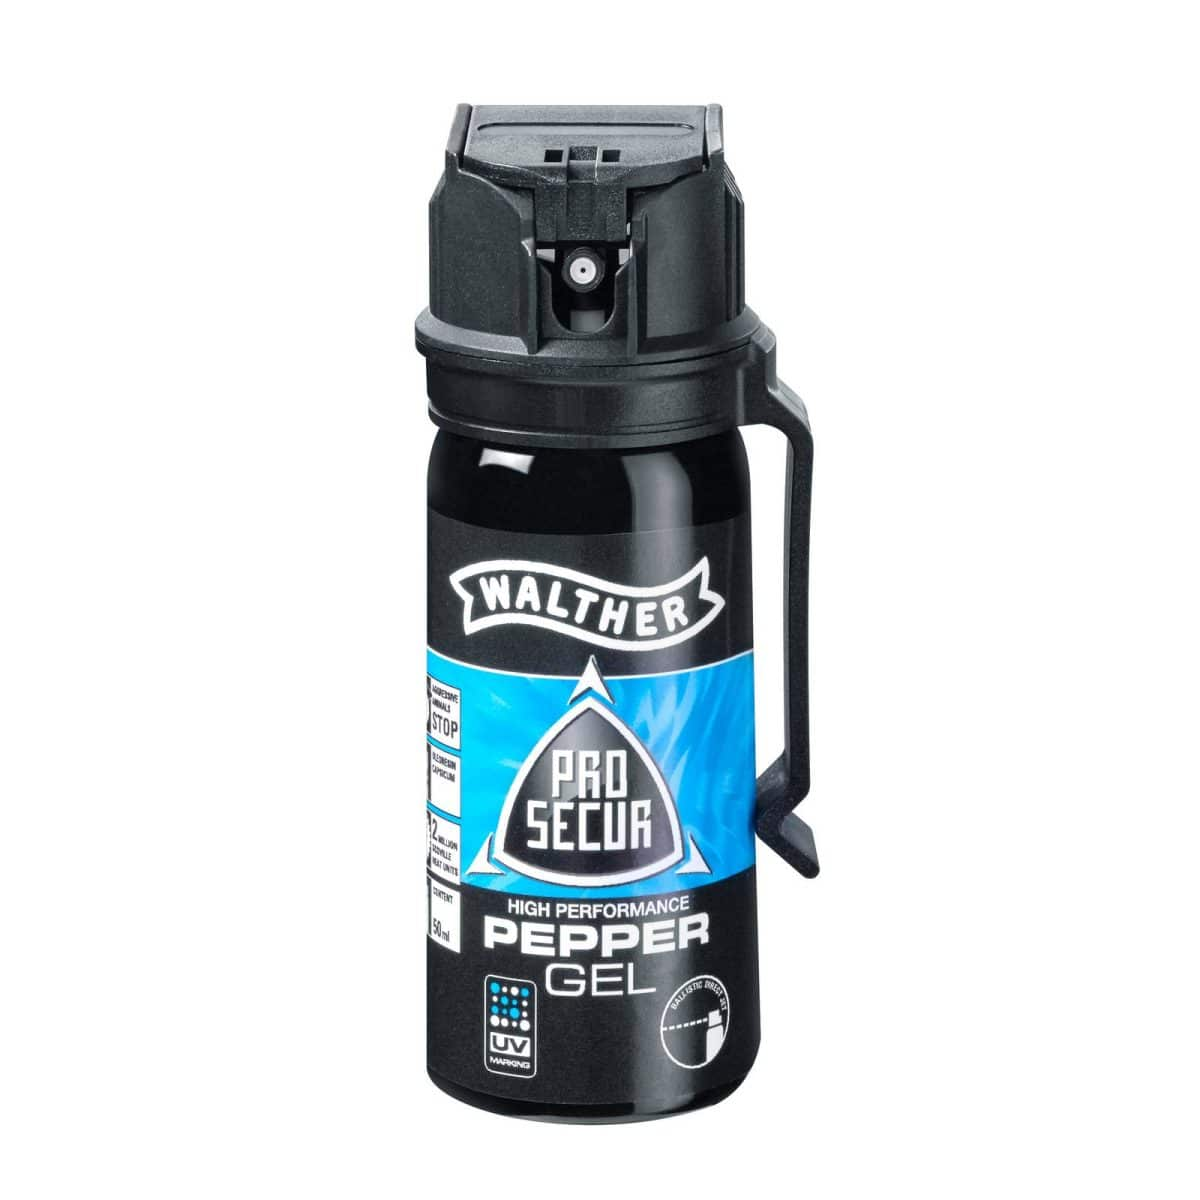 Spray piper GEL Walther 50ml jet concentrat